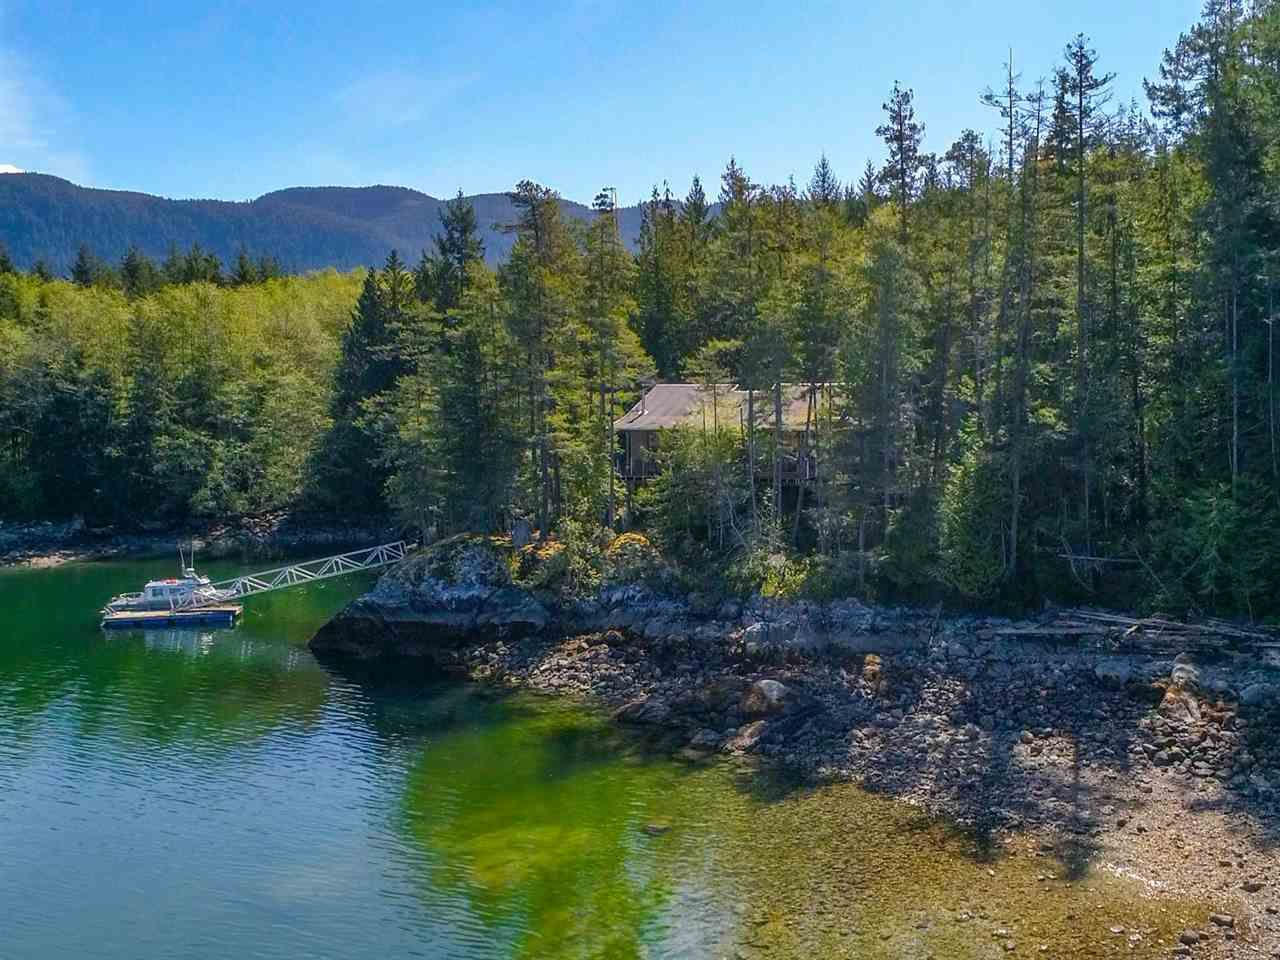 """Main Photo: Lot 39 HARDY ISLAND in Pender Harbour: Pender Harbour Egmont House for sale in """"LOT 39"""" (Sunshine Coast)  : MLS®# R2365453"""